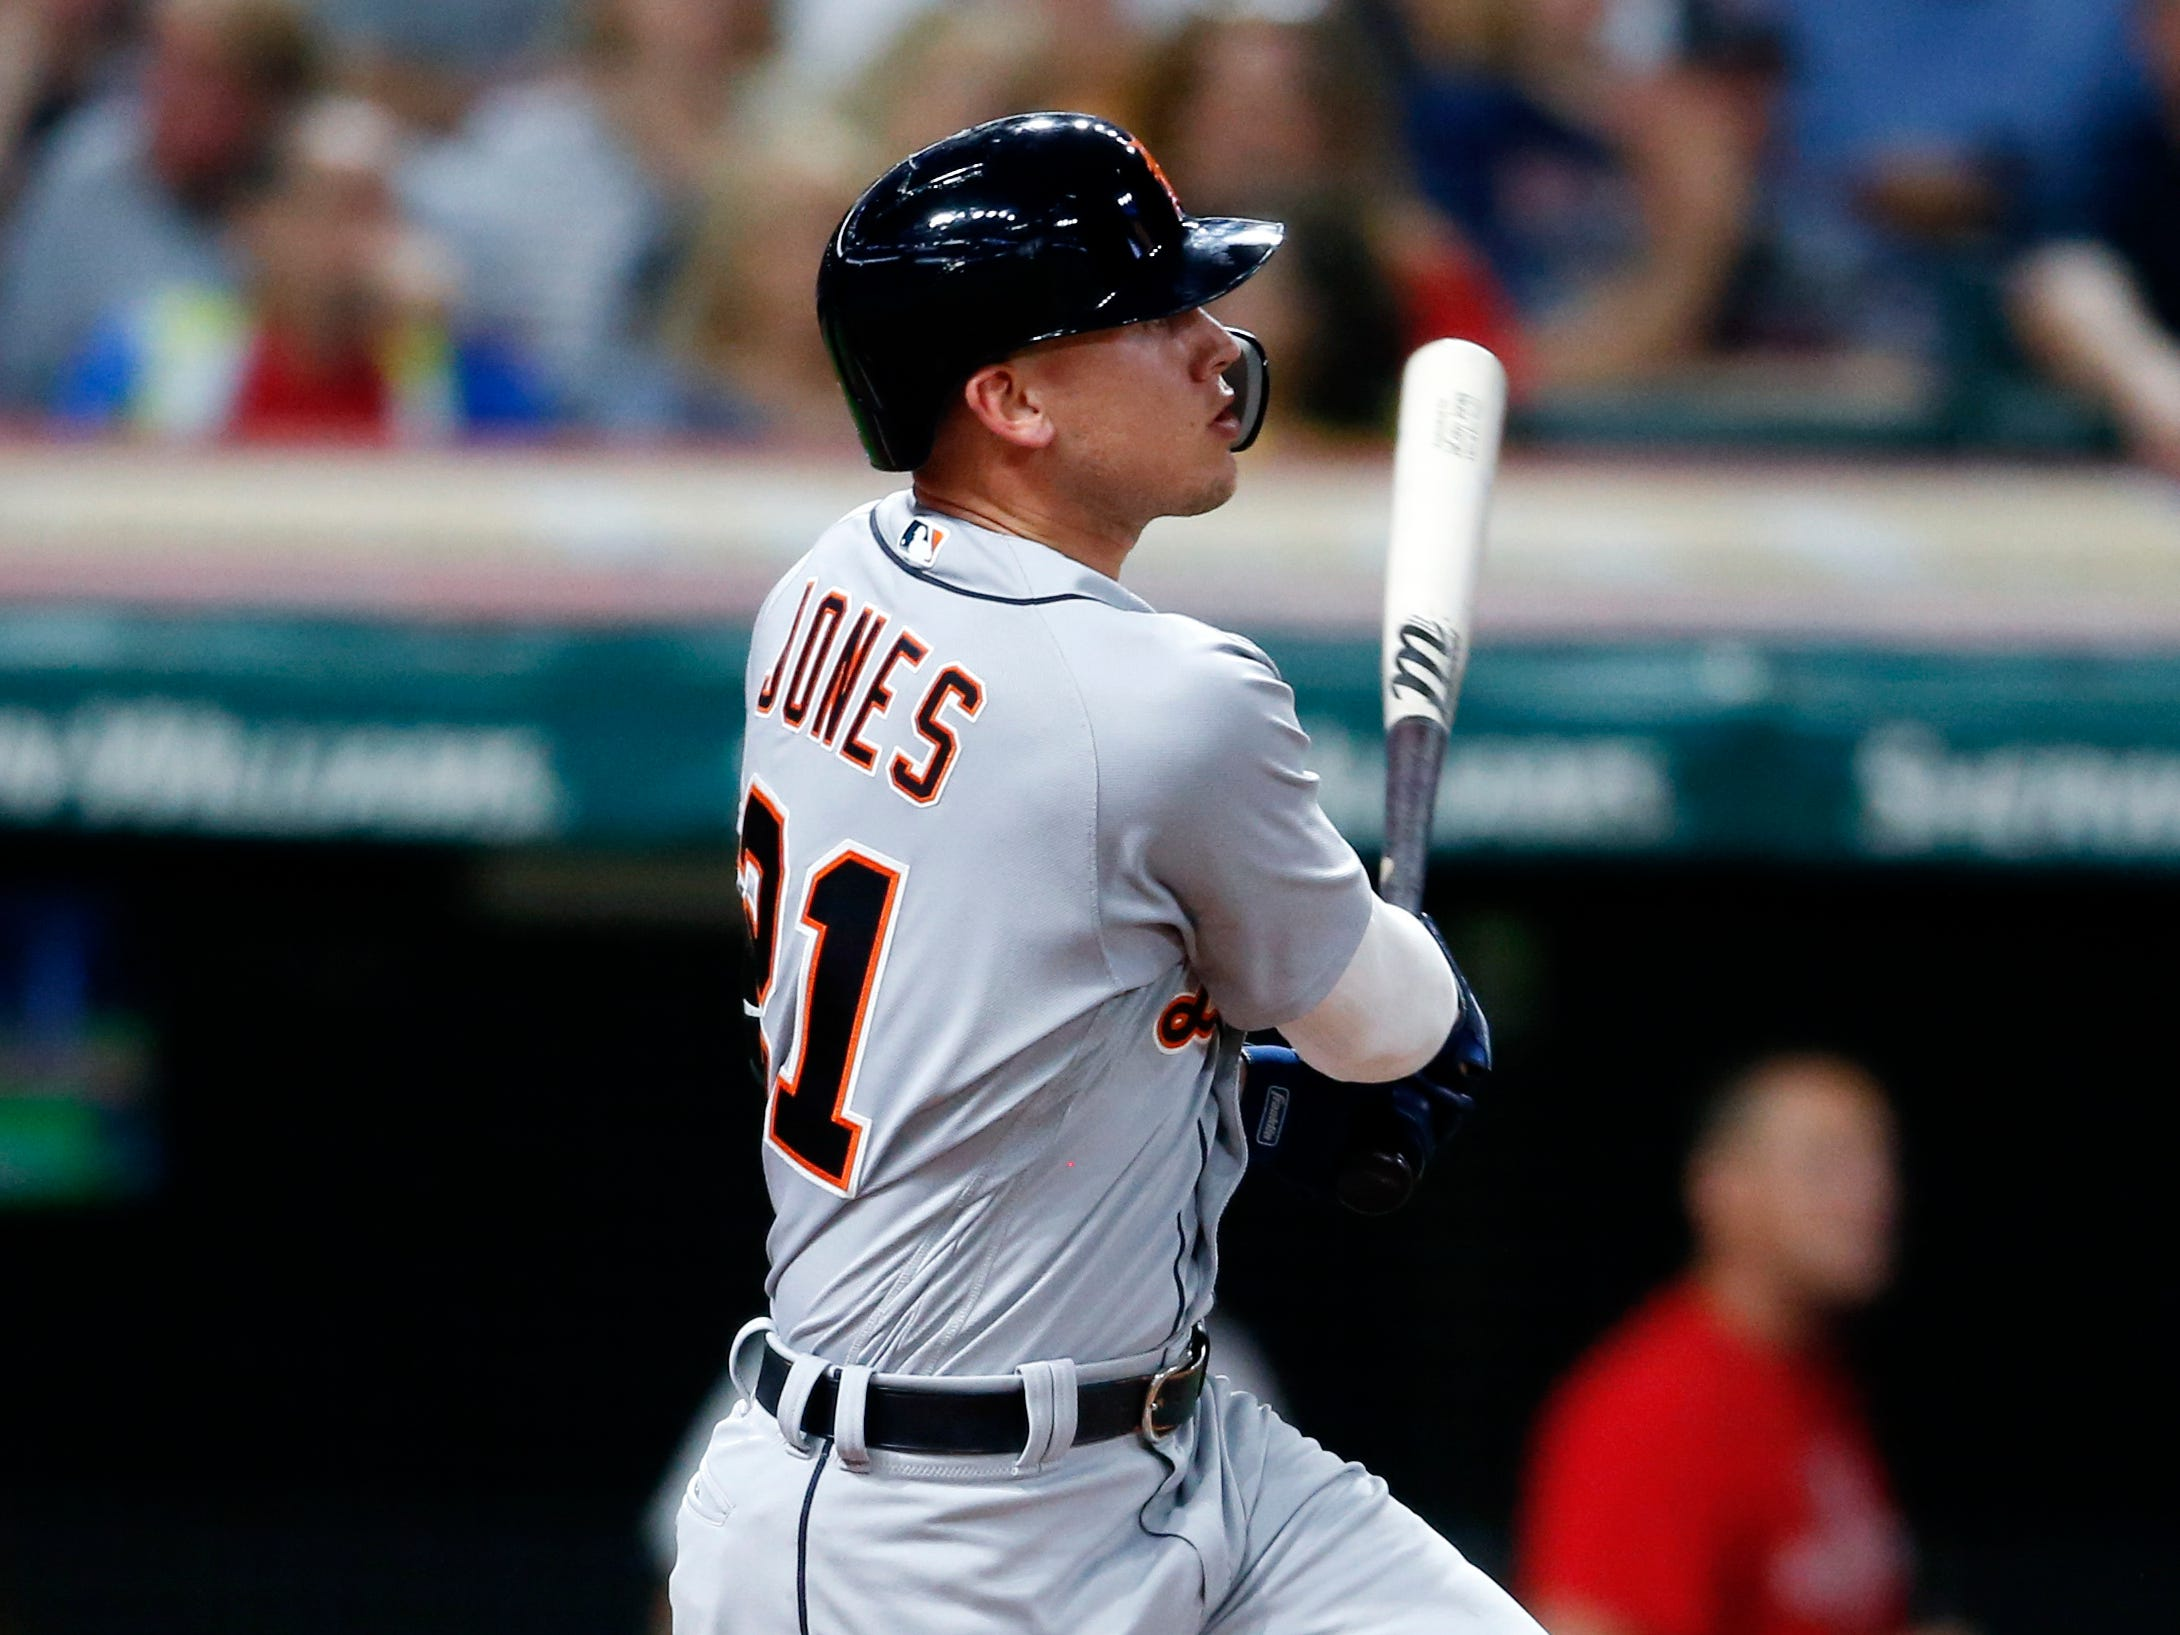 Detroit Tigers' JaCoby Jones hits a one-run double off Cleveland Indians starting pitcher Josh Tomlin during the fourth inning of a baseball game, Friday, Sept. 14, 2018, in Cleveland.